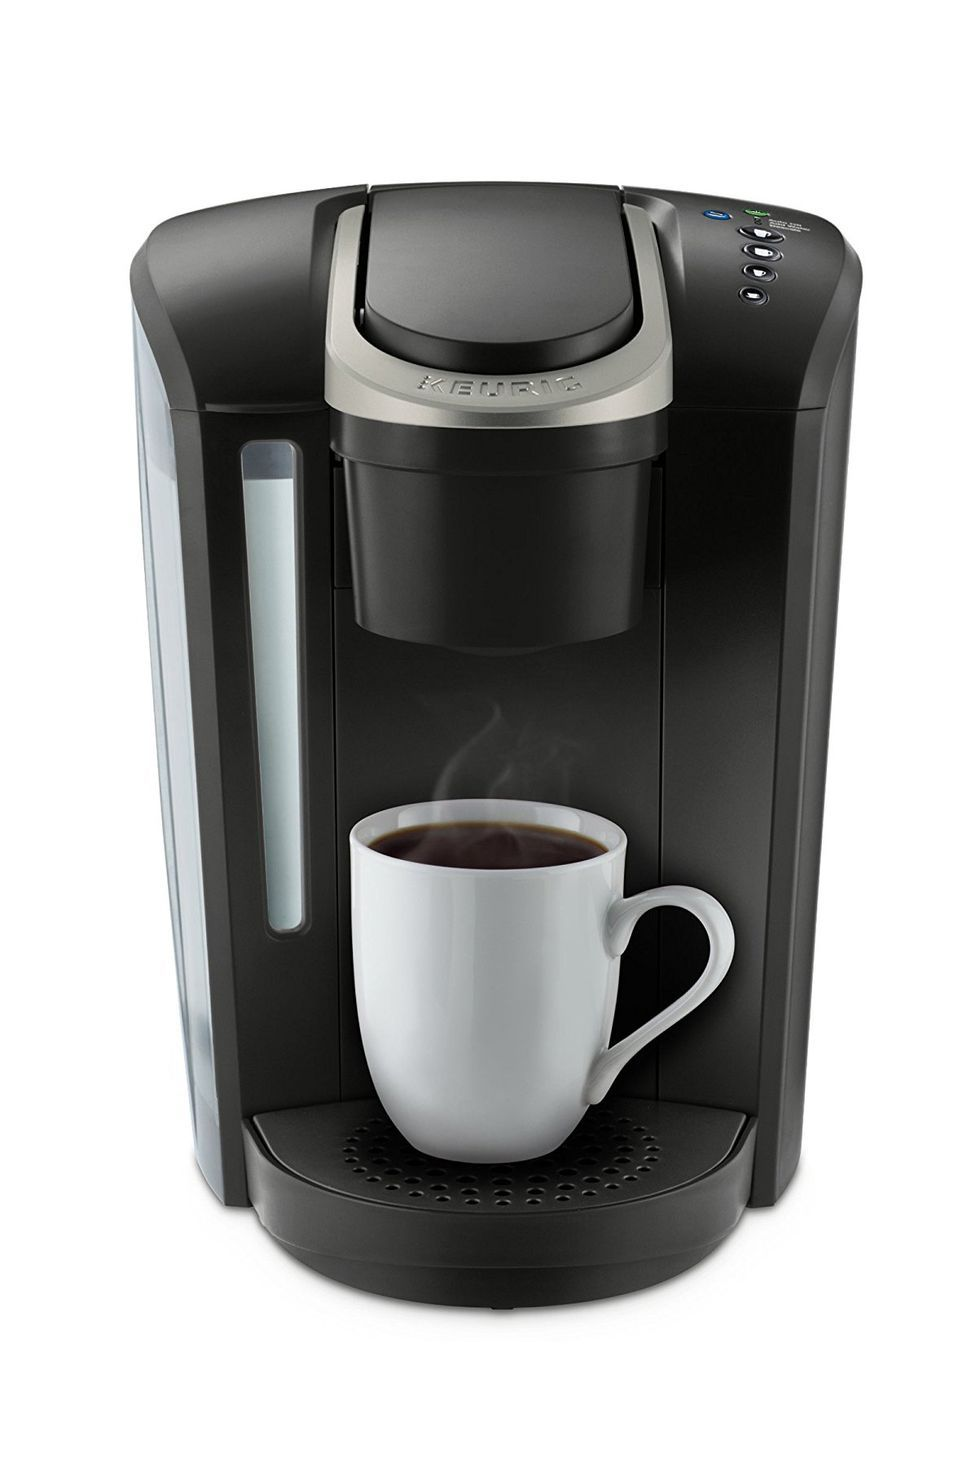 How To Properly Clean A Keurig Coffee Machine To Keep Bacteria